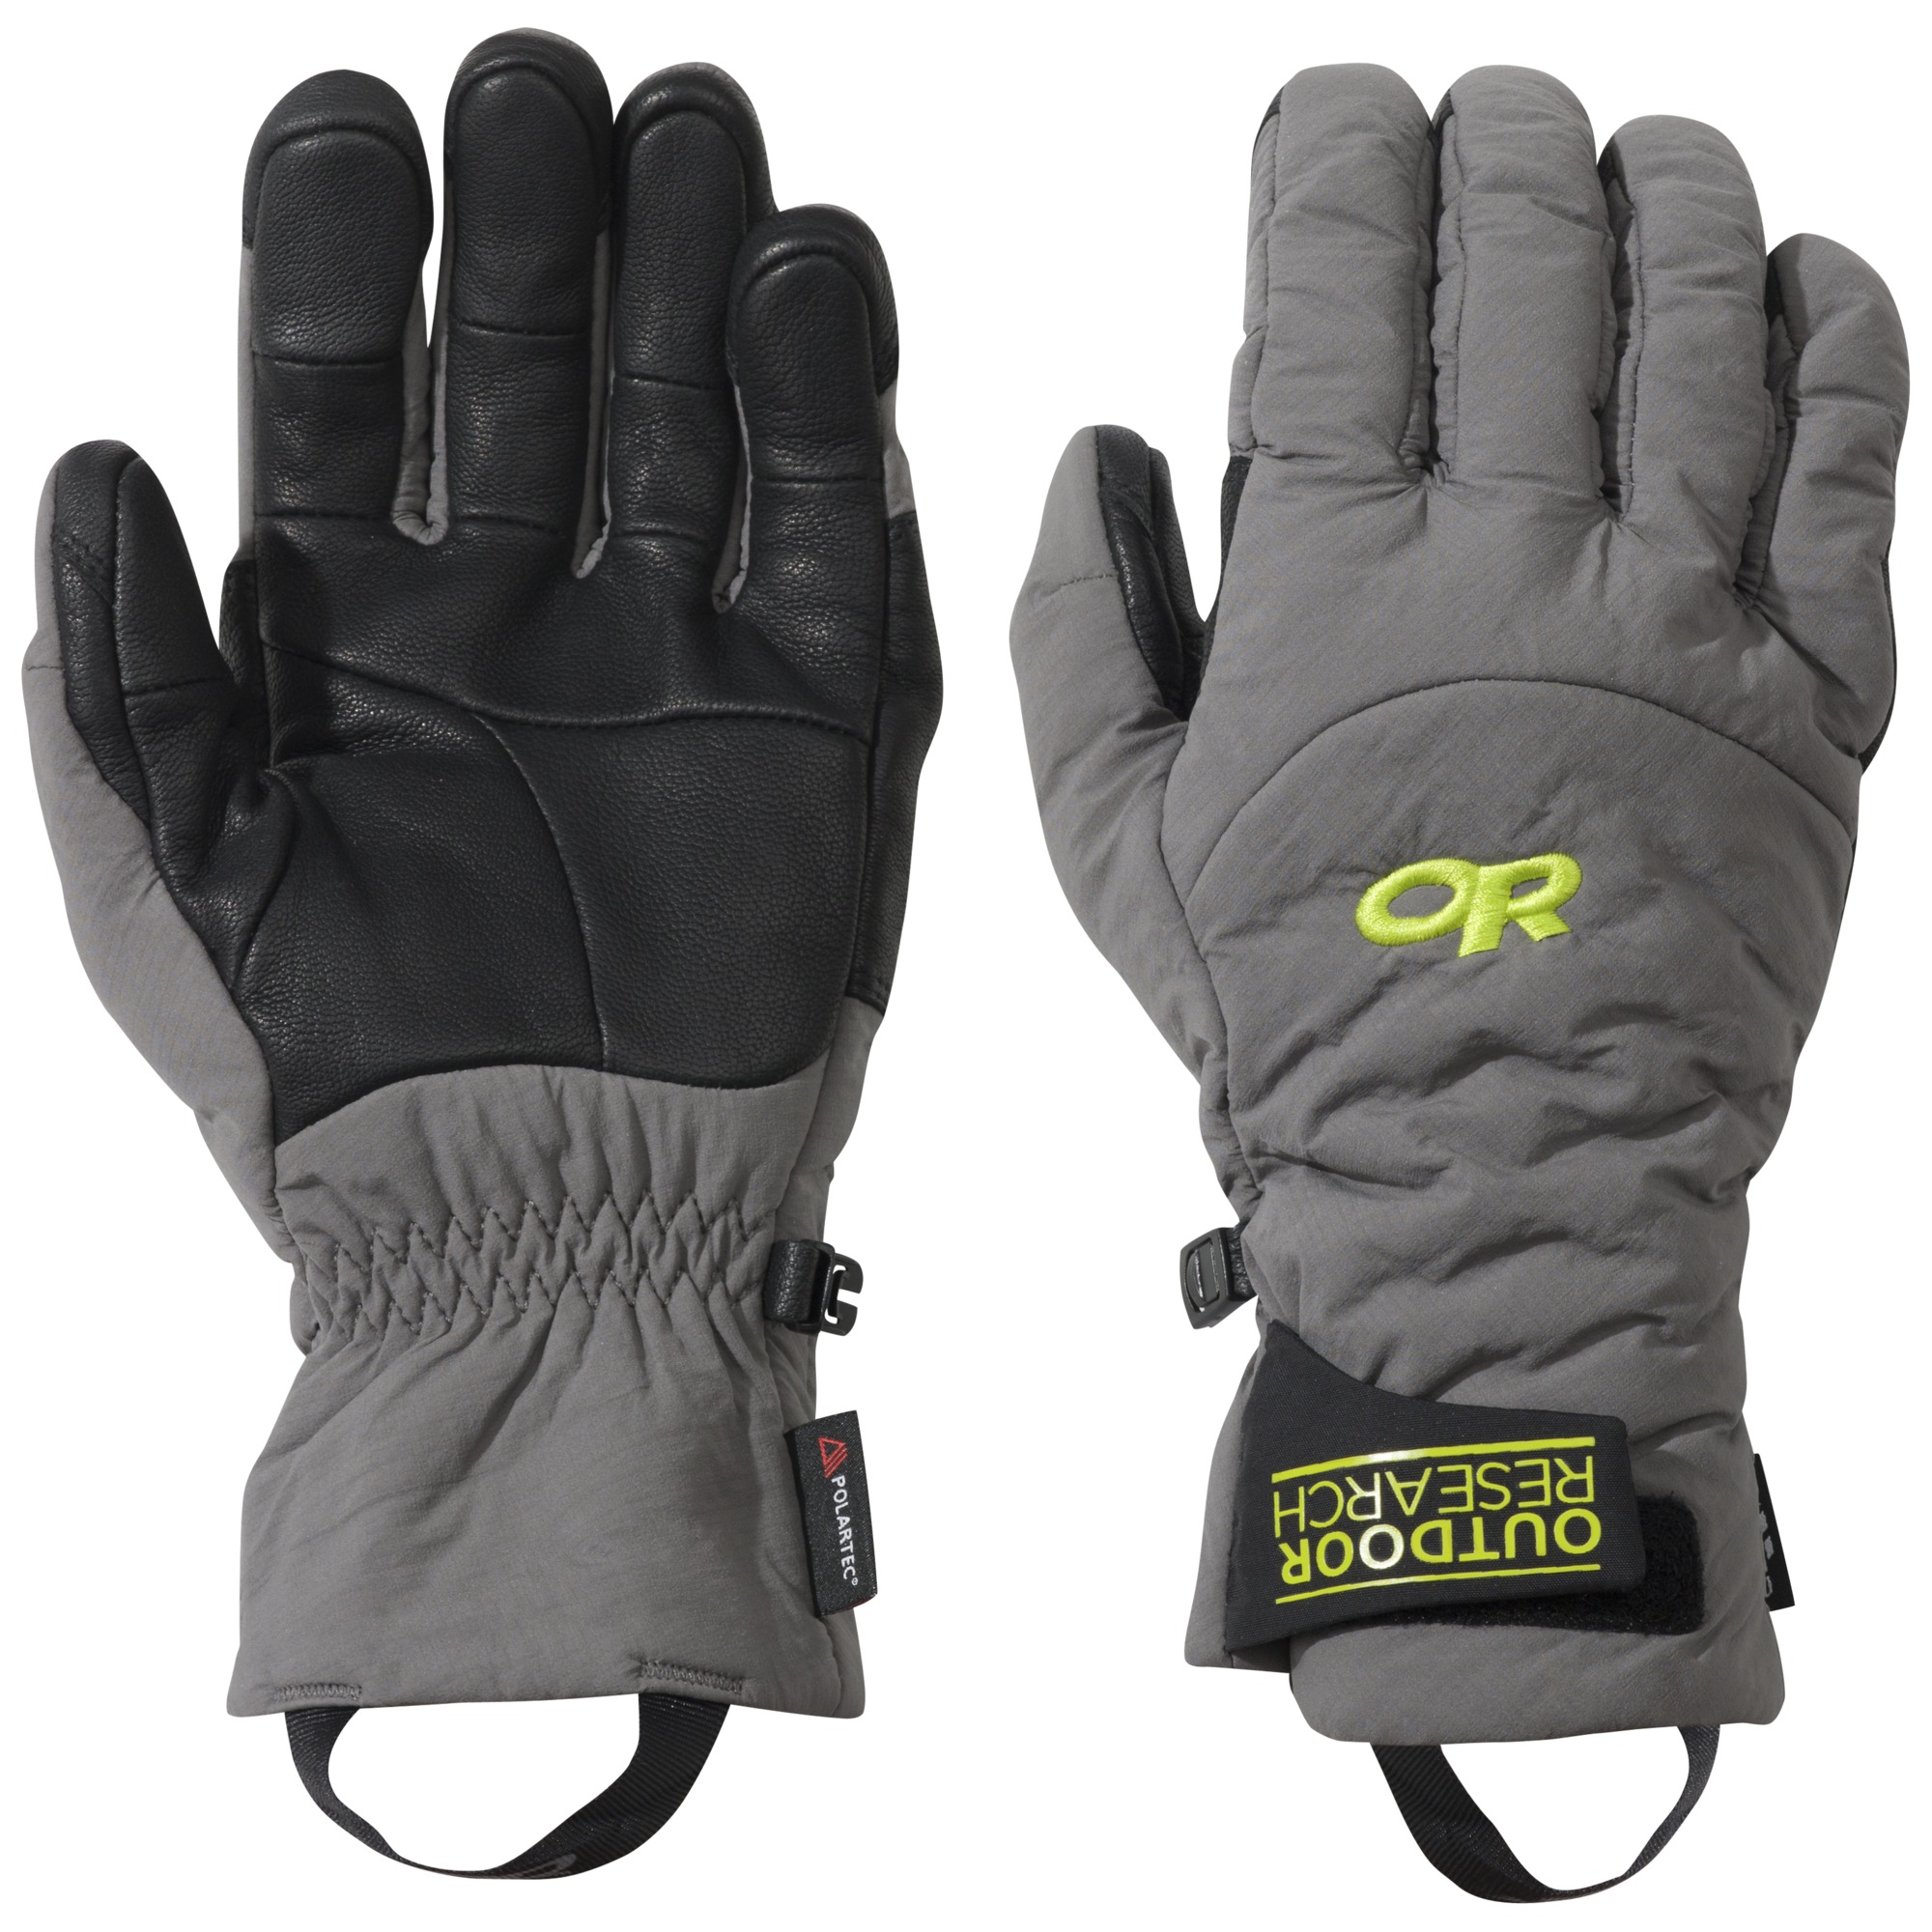 OR Lodestar Gloves�